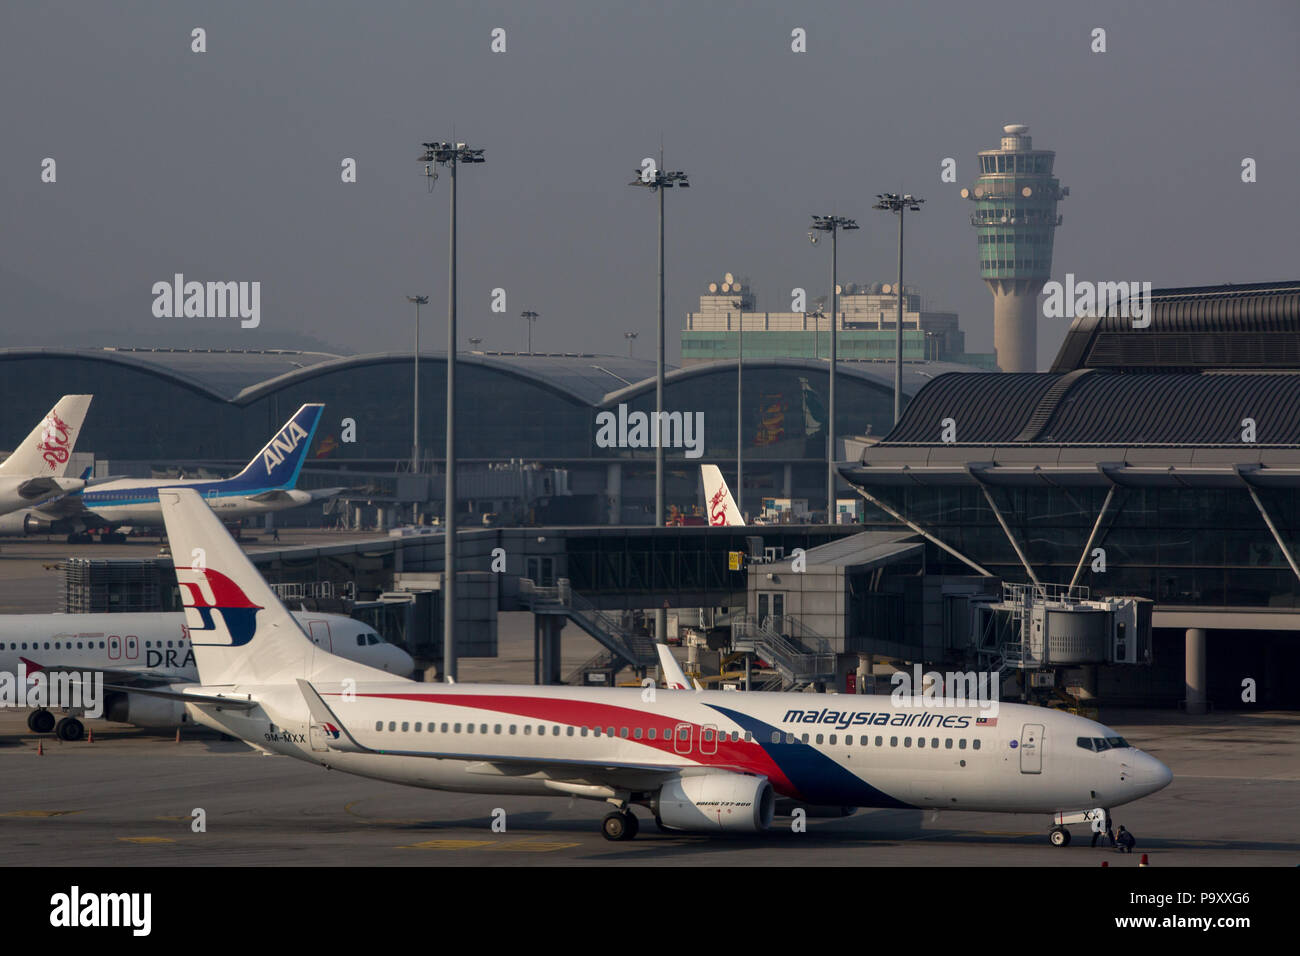 The Boeing 737-800 civil jet airplane of Malaysia Airlines at Chek Lap Kok Airport, Hong Kong, China - Stock Image